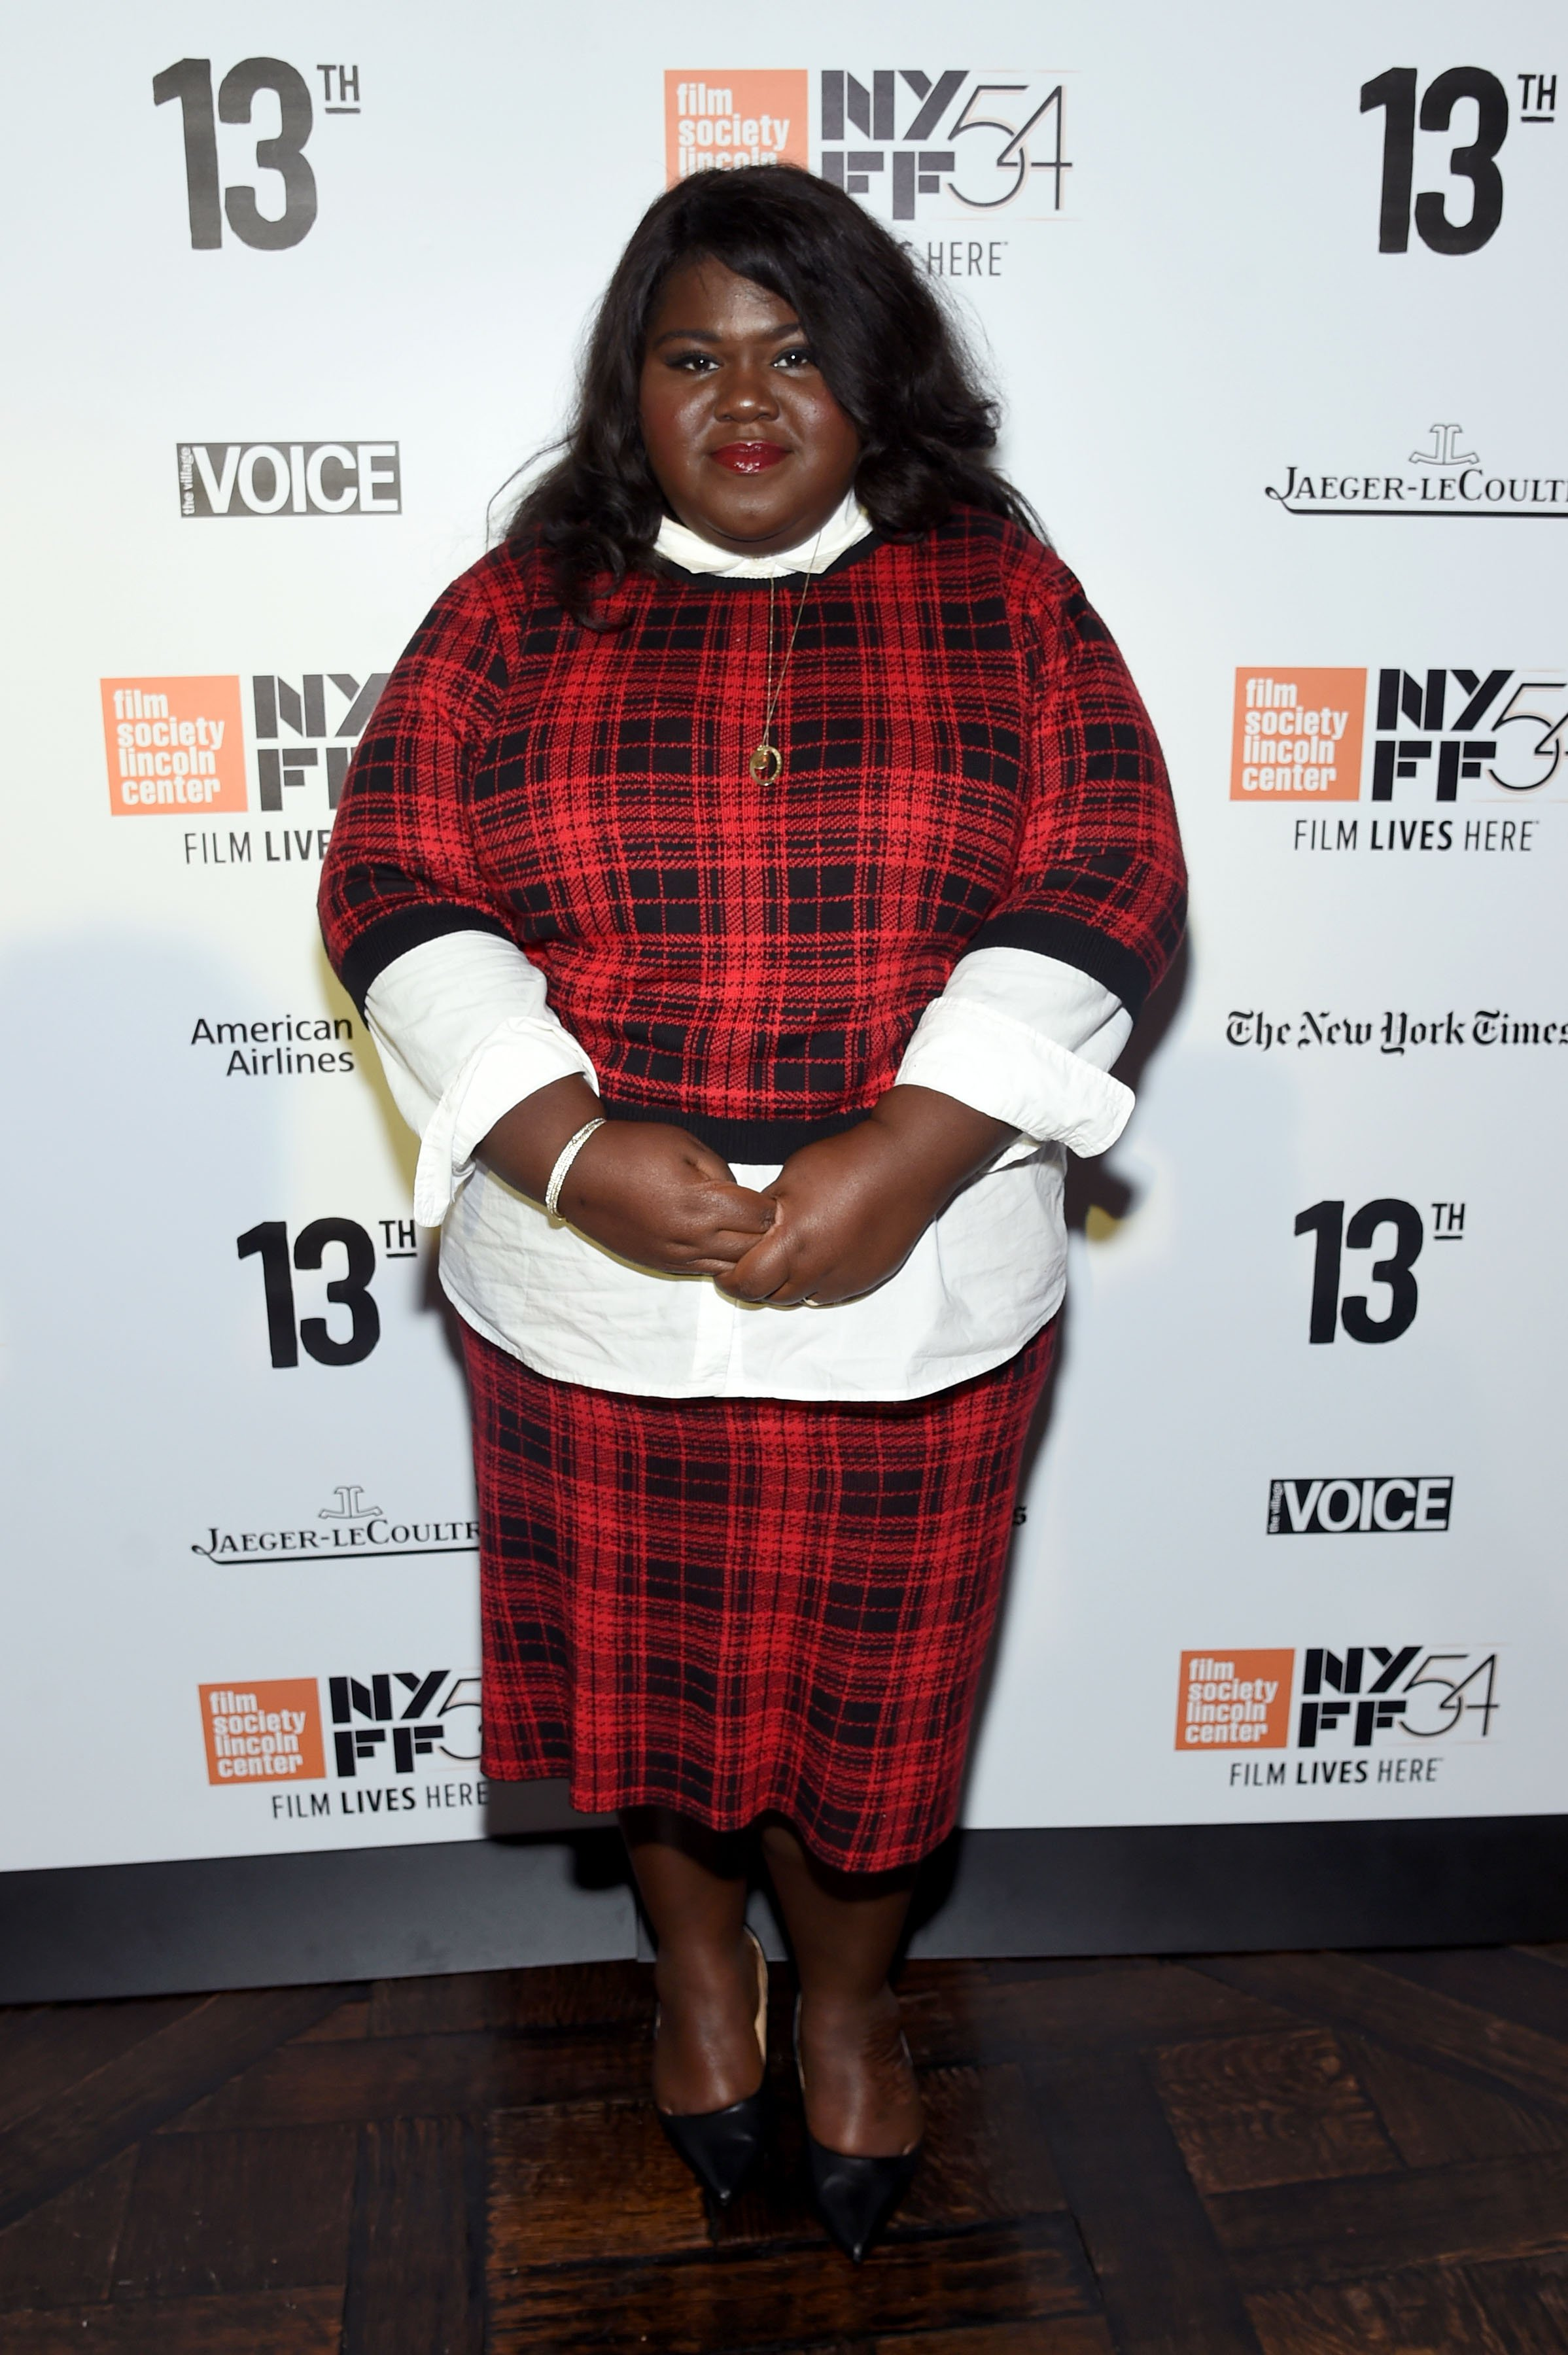 Gabourey Sidibe at the New York Film Festival Opening Night Party on Sept. 30, 2016 in New York City | Photo: Getty Images